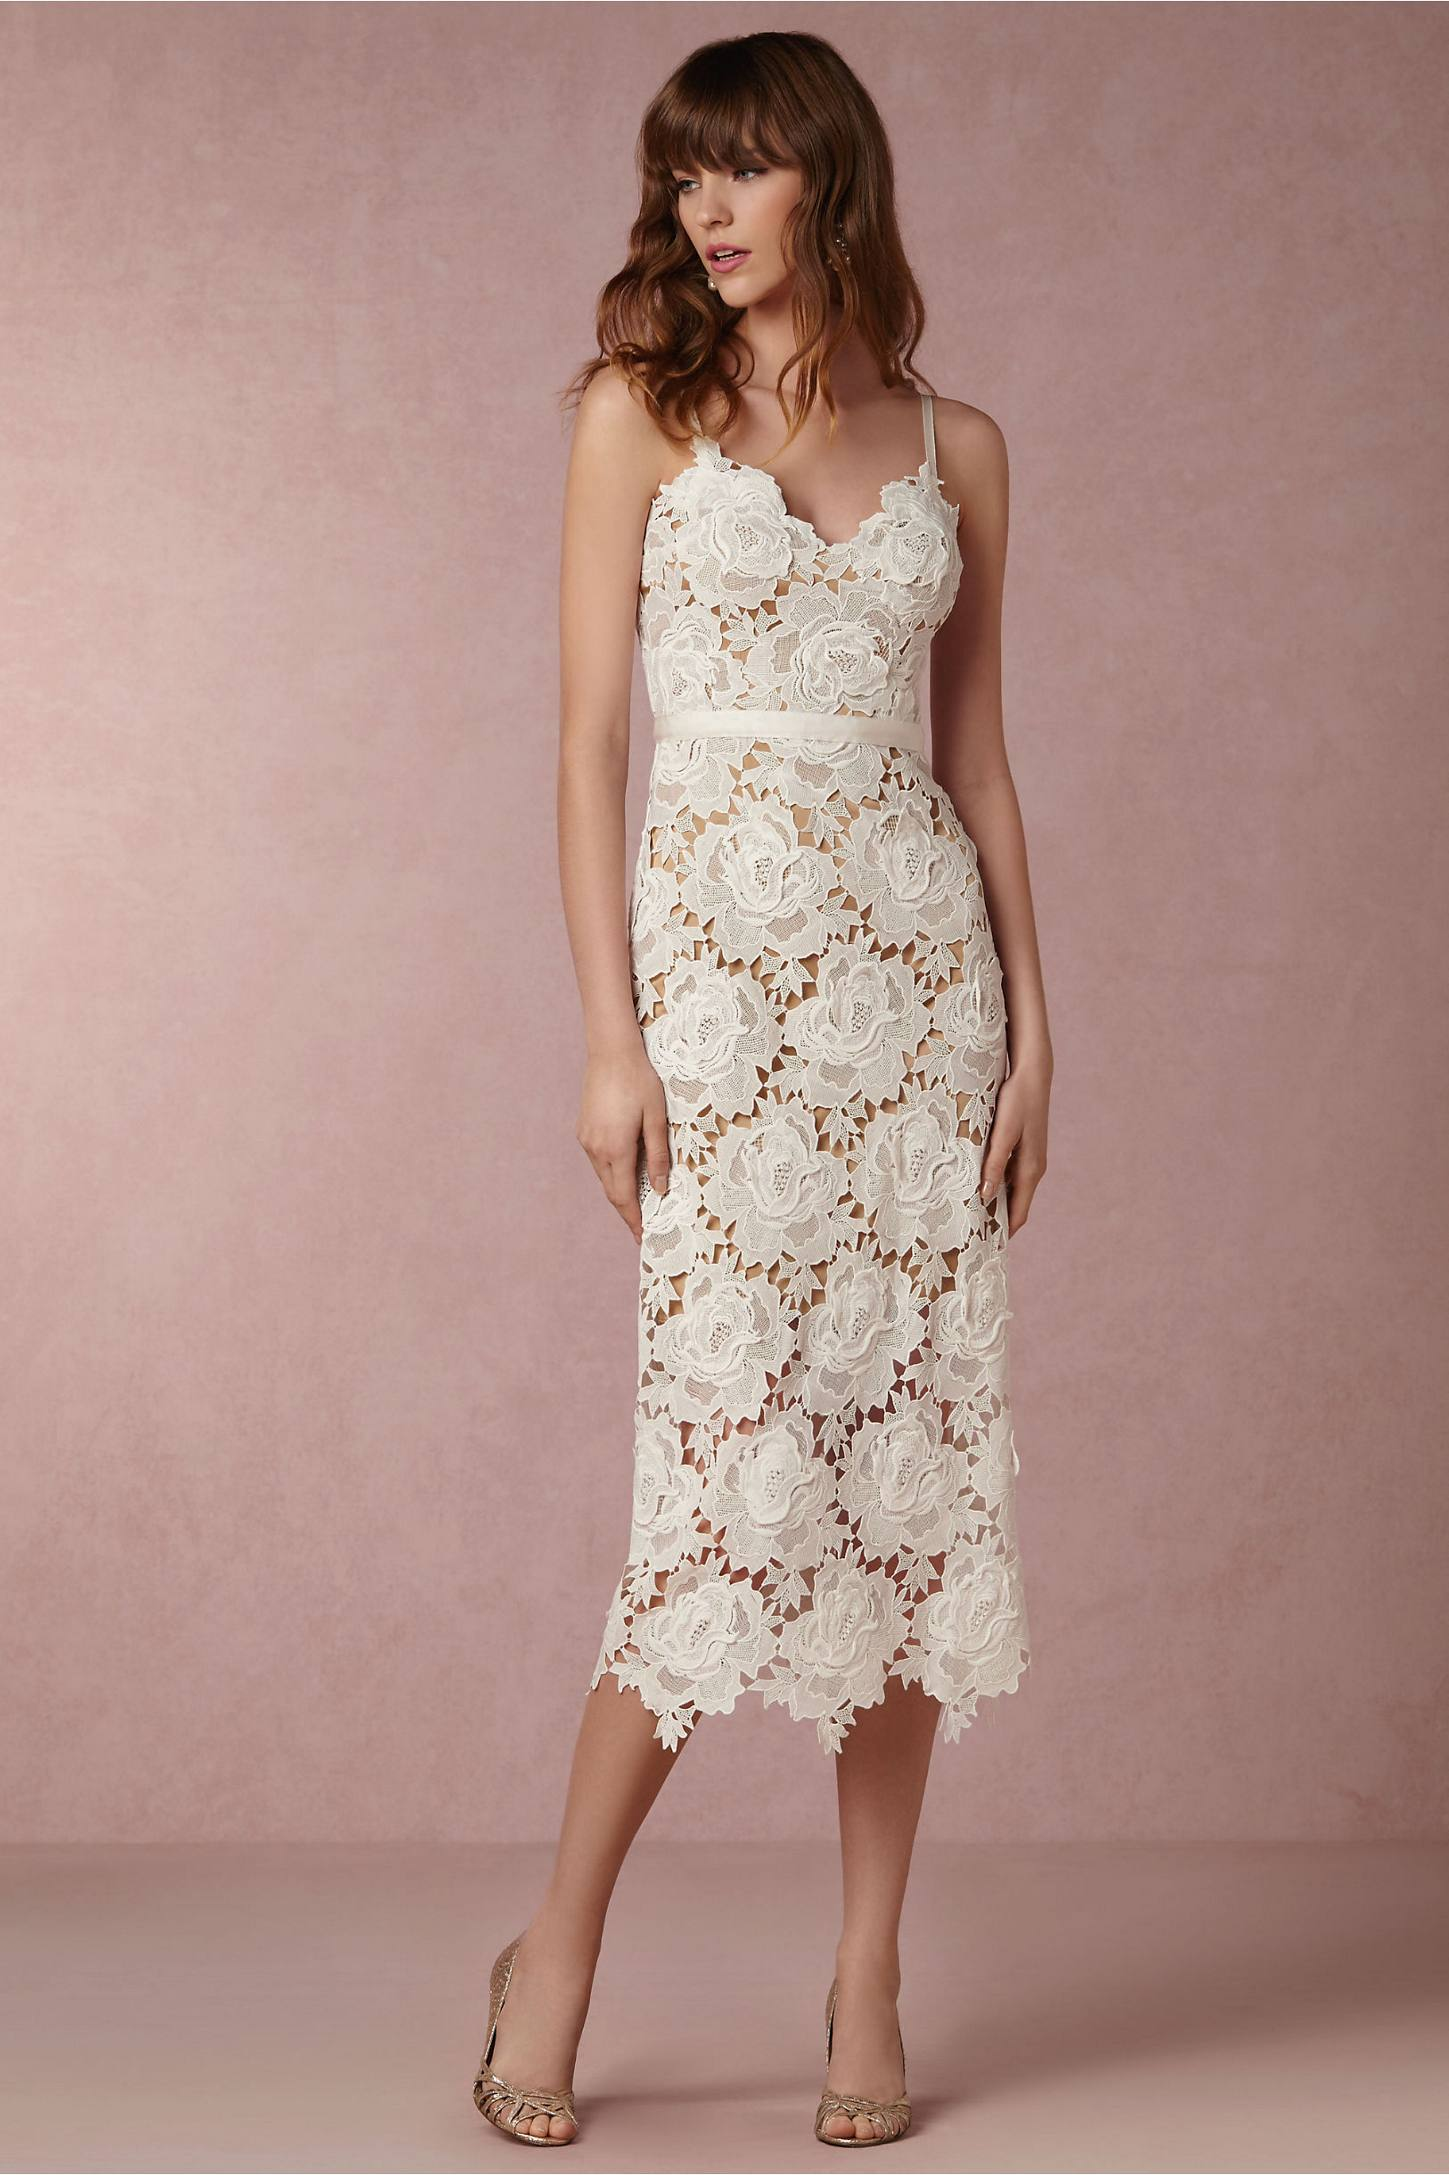 Frida Dress Anthropologie